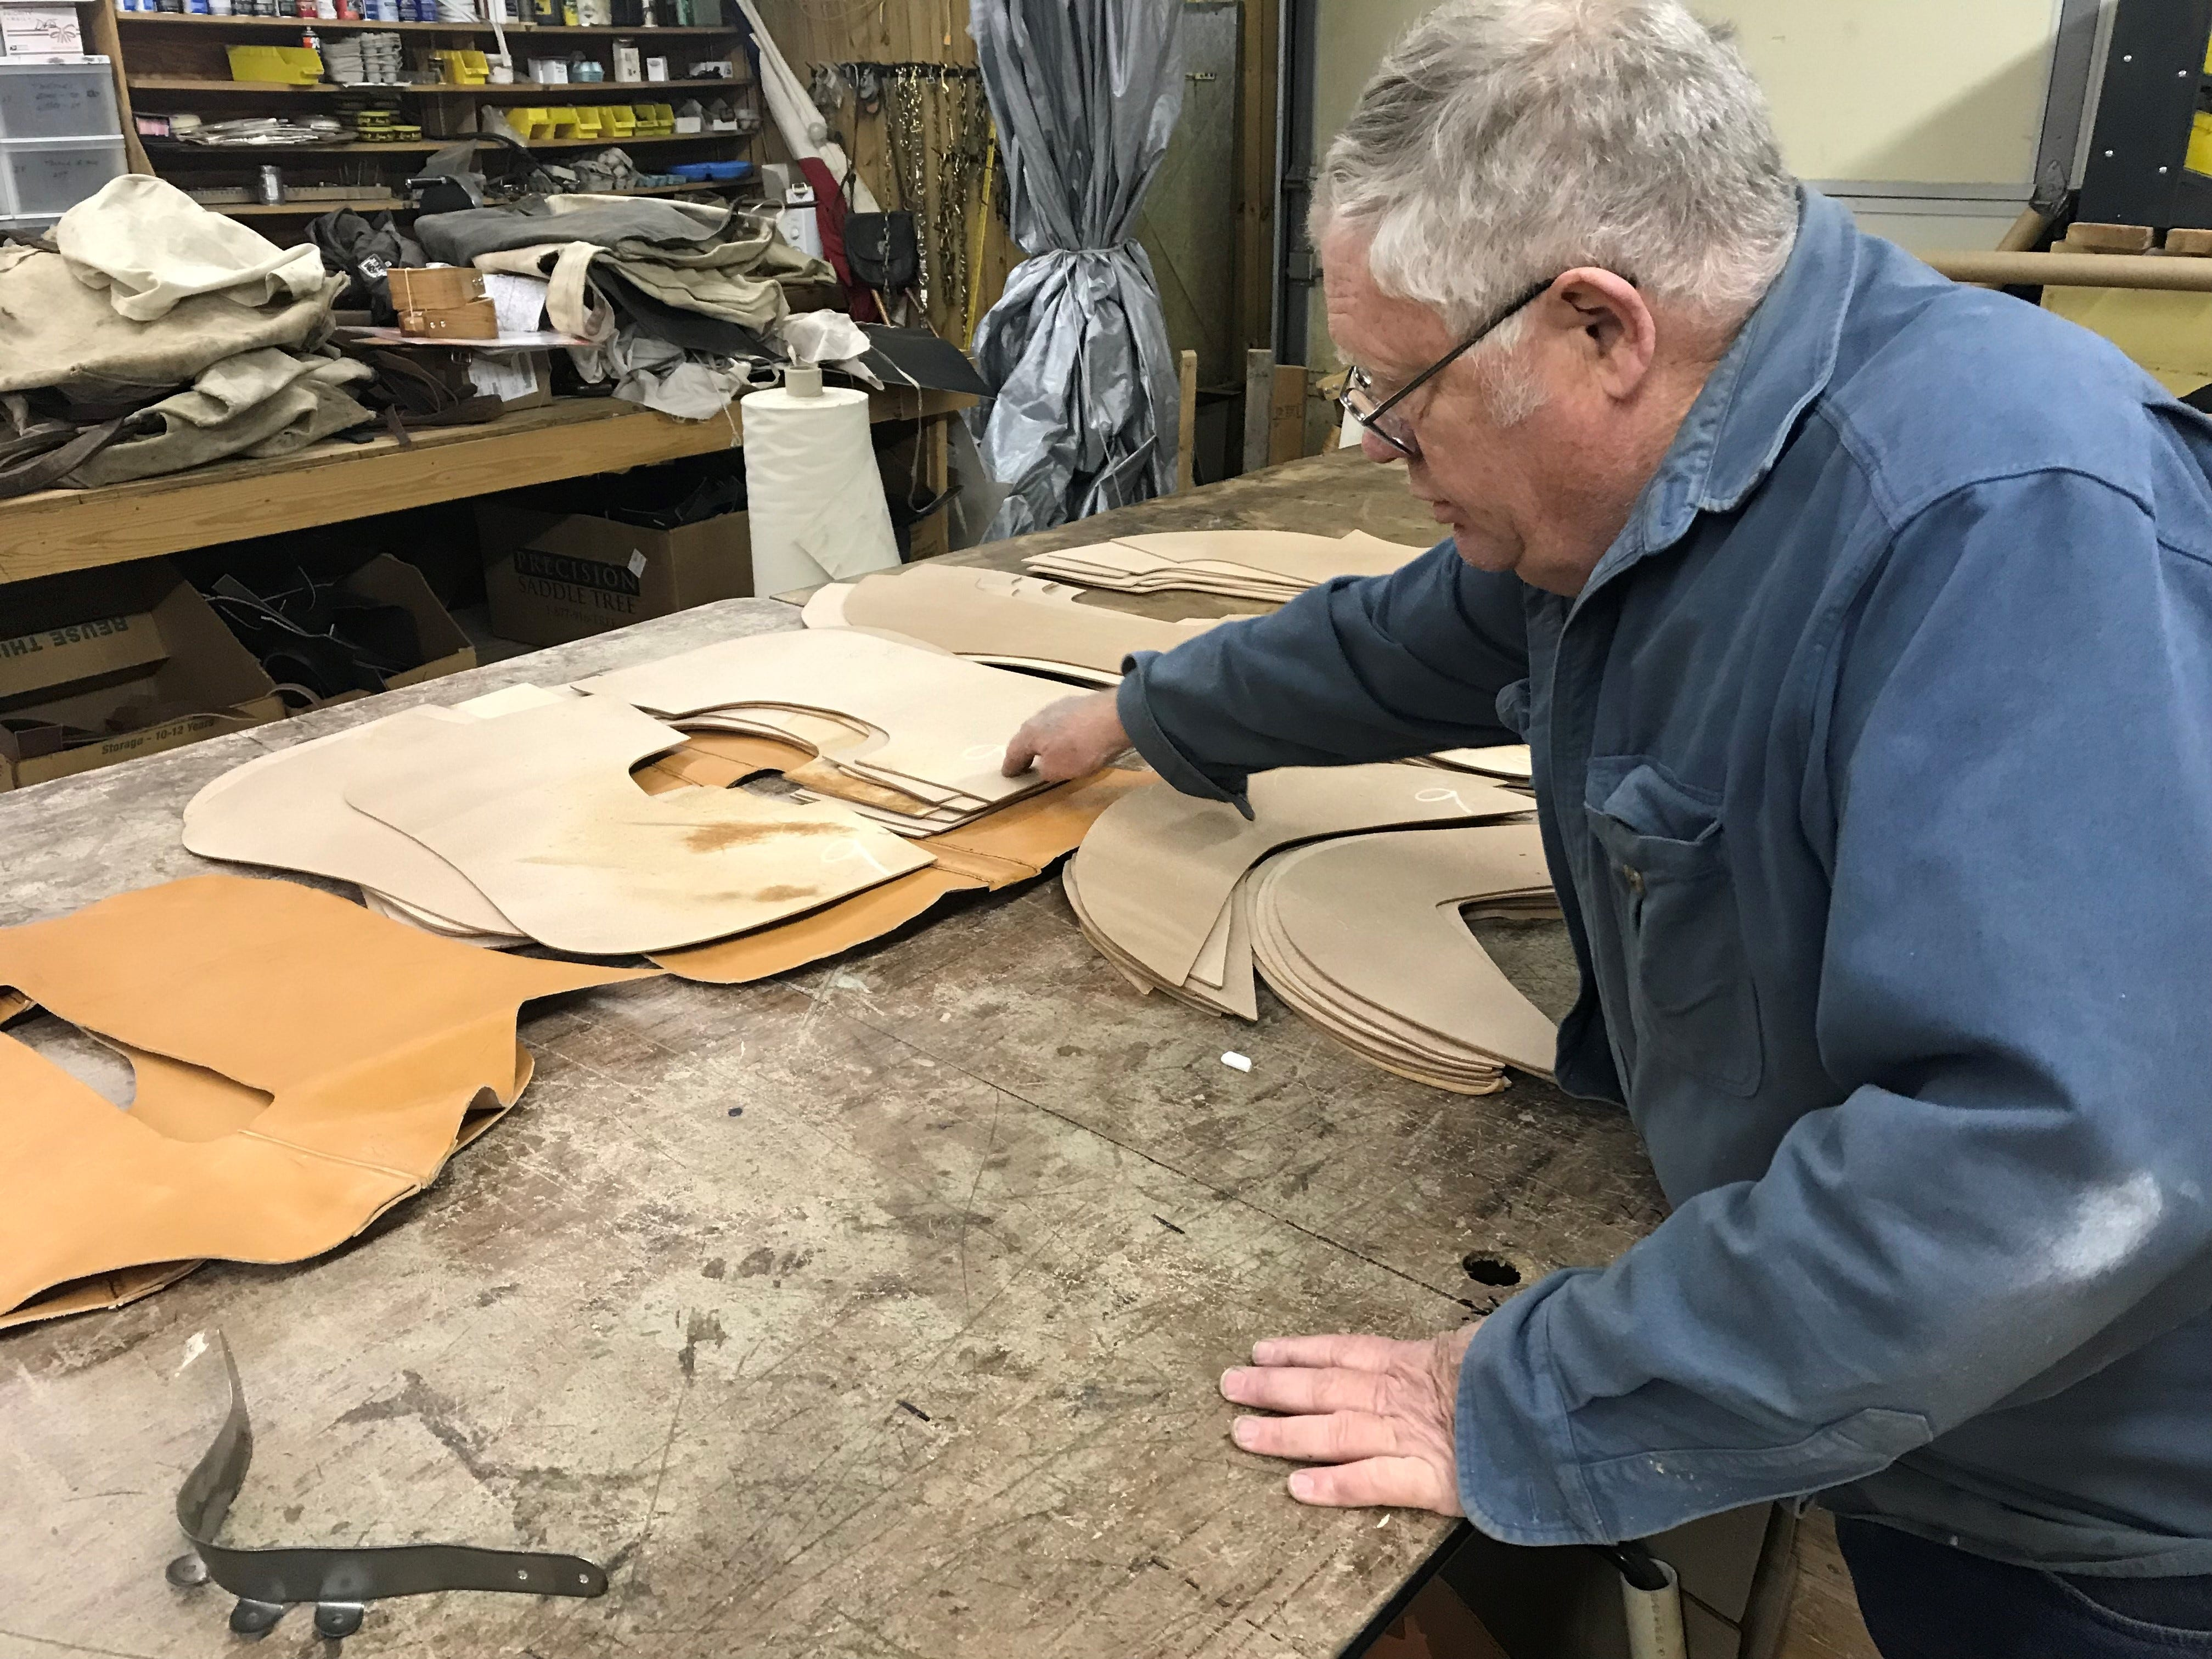 Nils Shawn Pascuzzi shows how to measure leather needed to be cut at Shawn's Custom Saddles and Tacks, 6581 Sykes Circle. Photo taken Jan. 2, 2019.